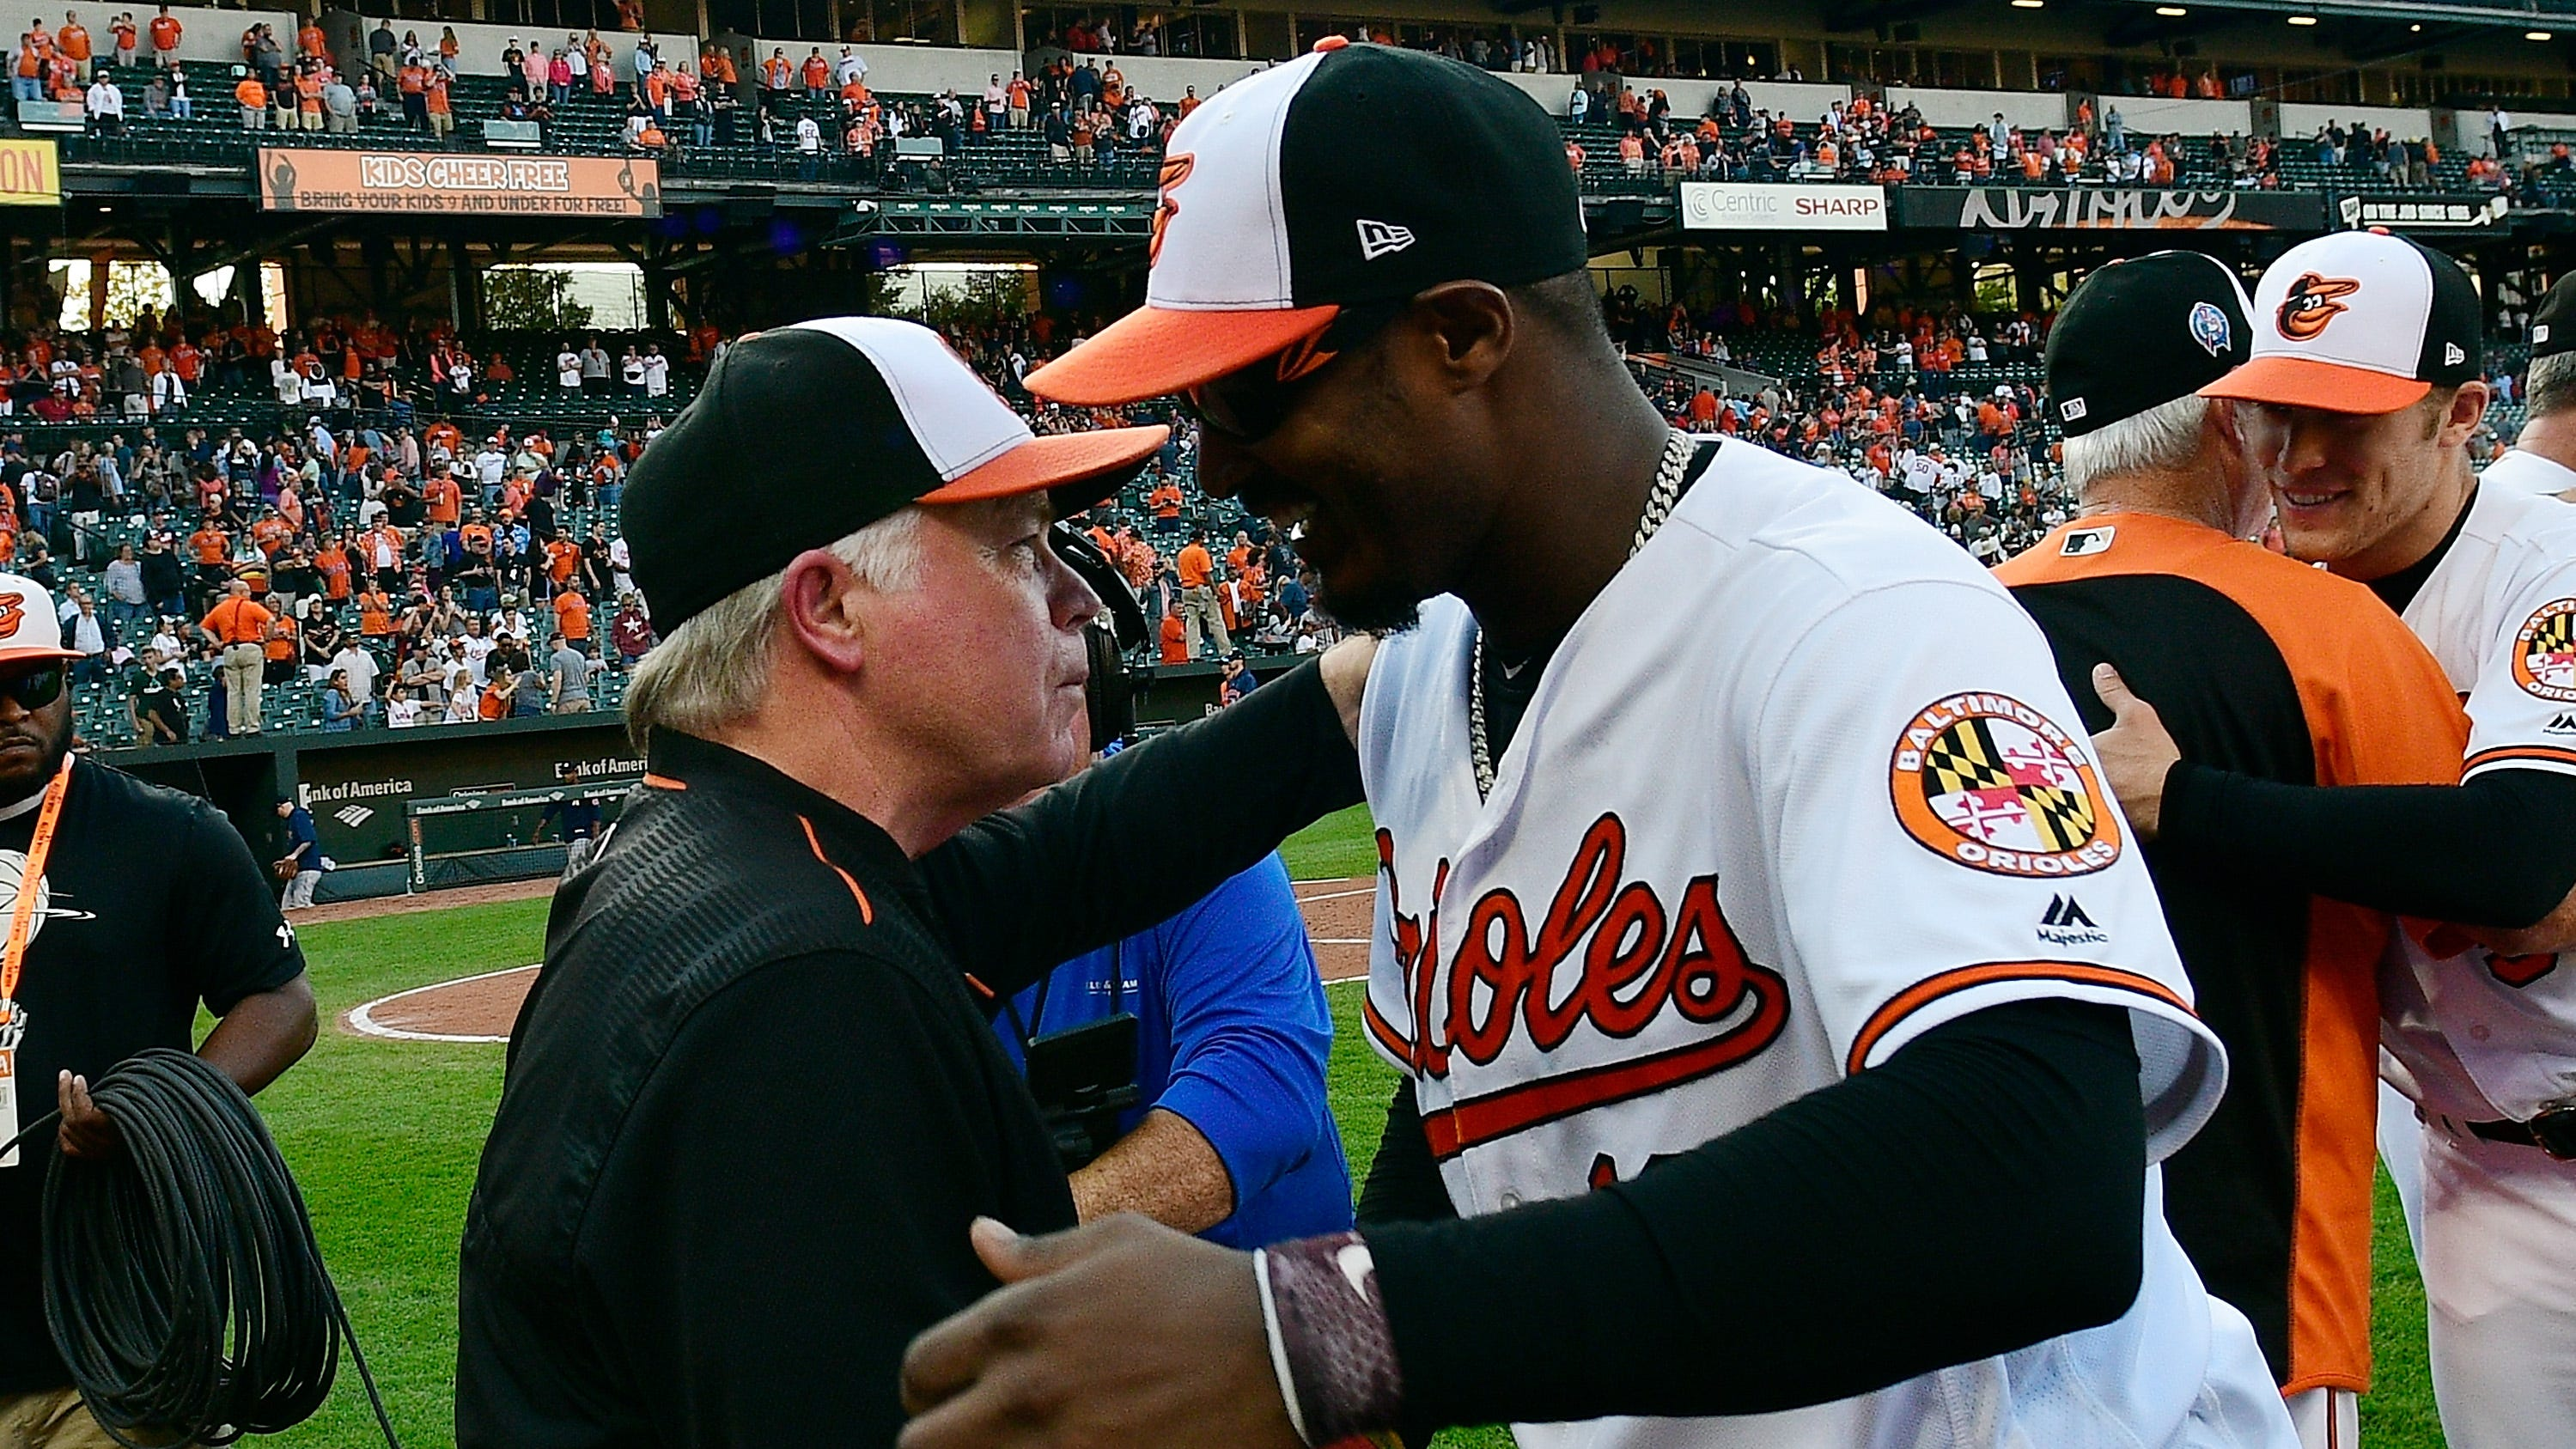 Cdf54ddf-e3f3-480f-afee-5ba3254a8c9c-usp_mlb__houston_astros_at_baltimore_orioles